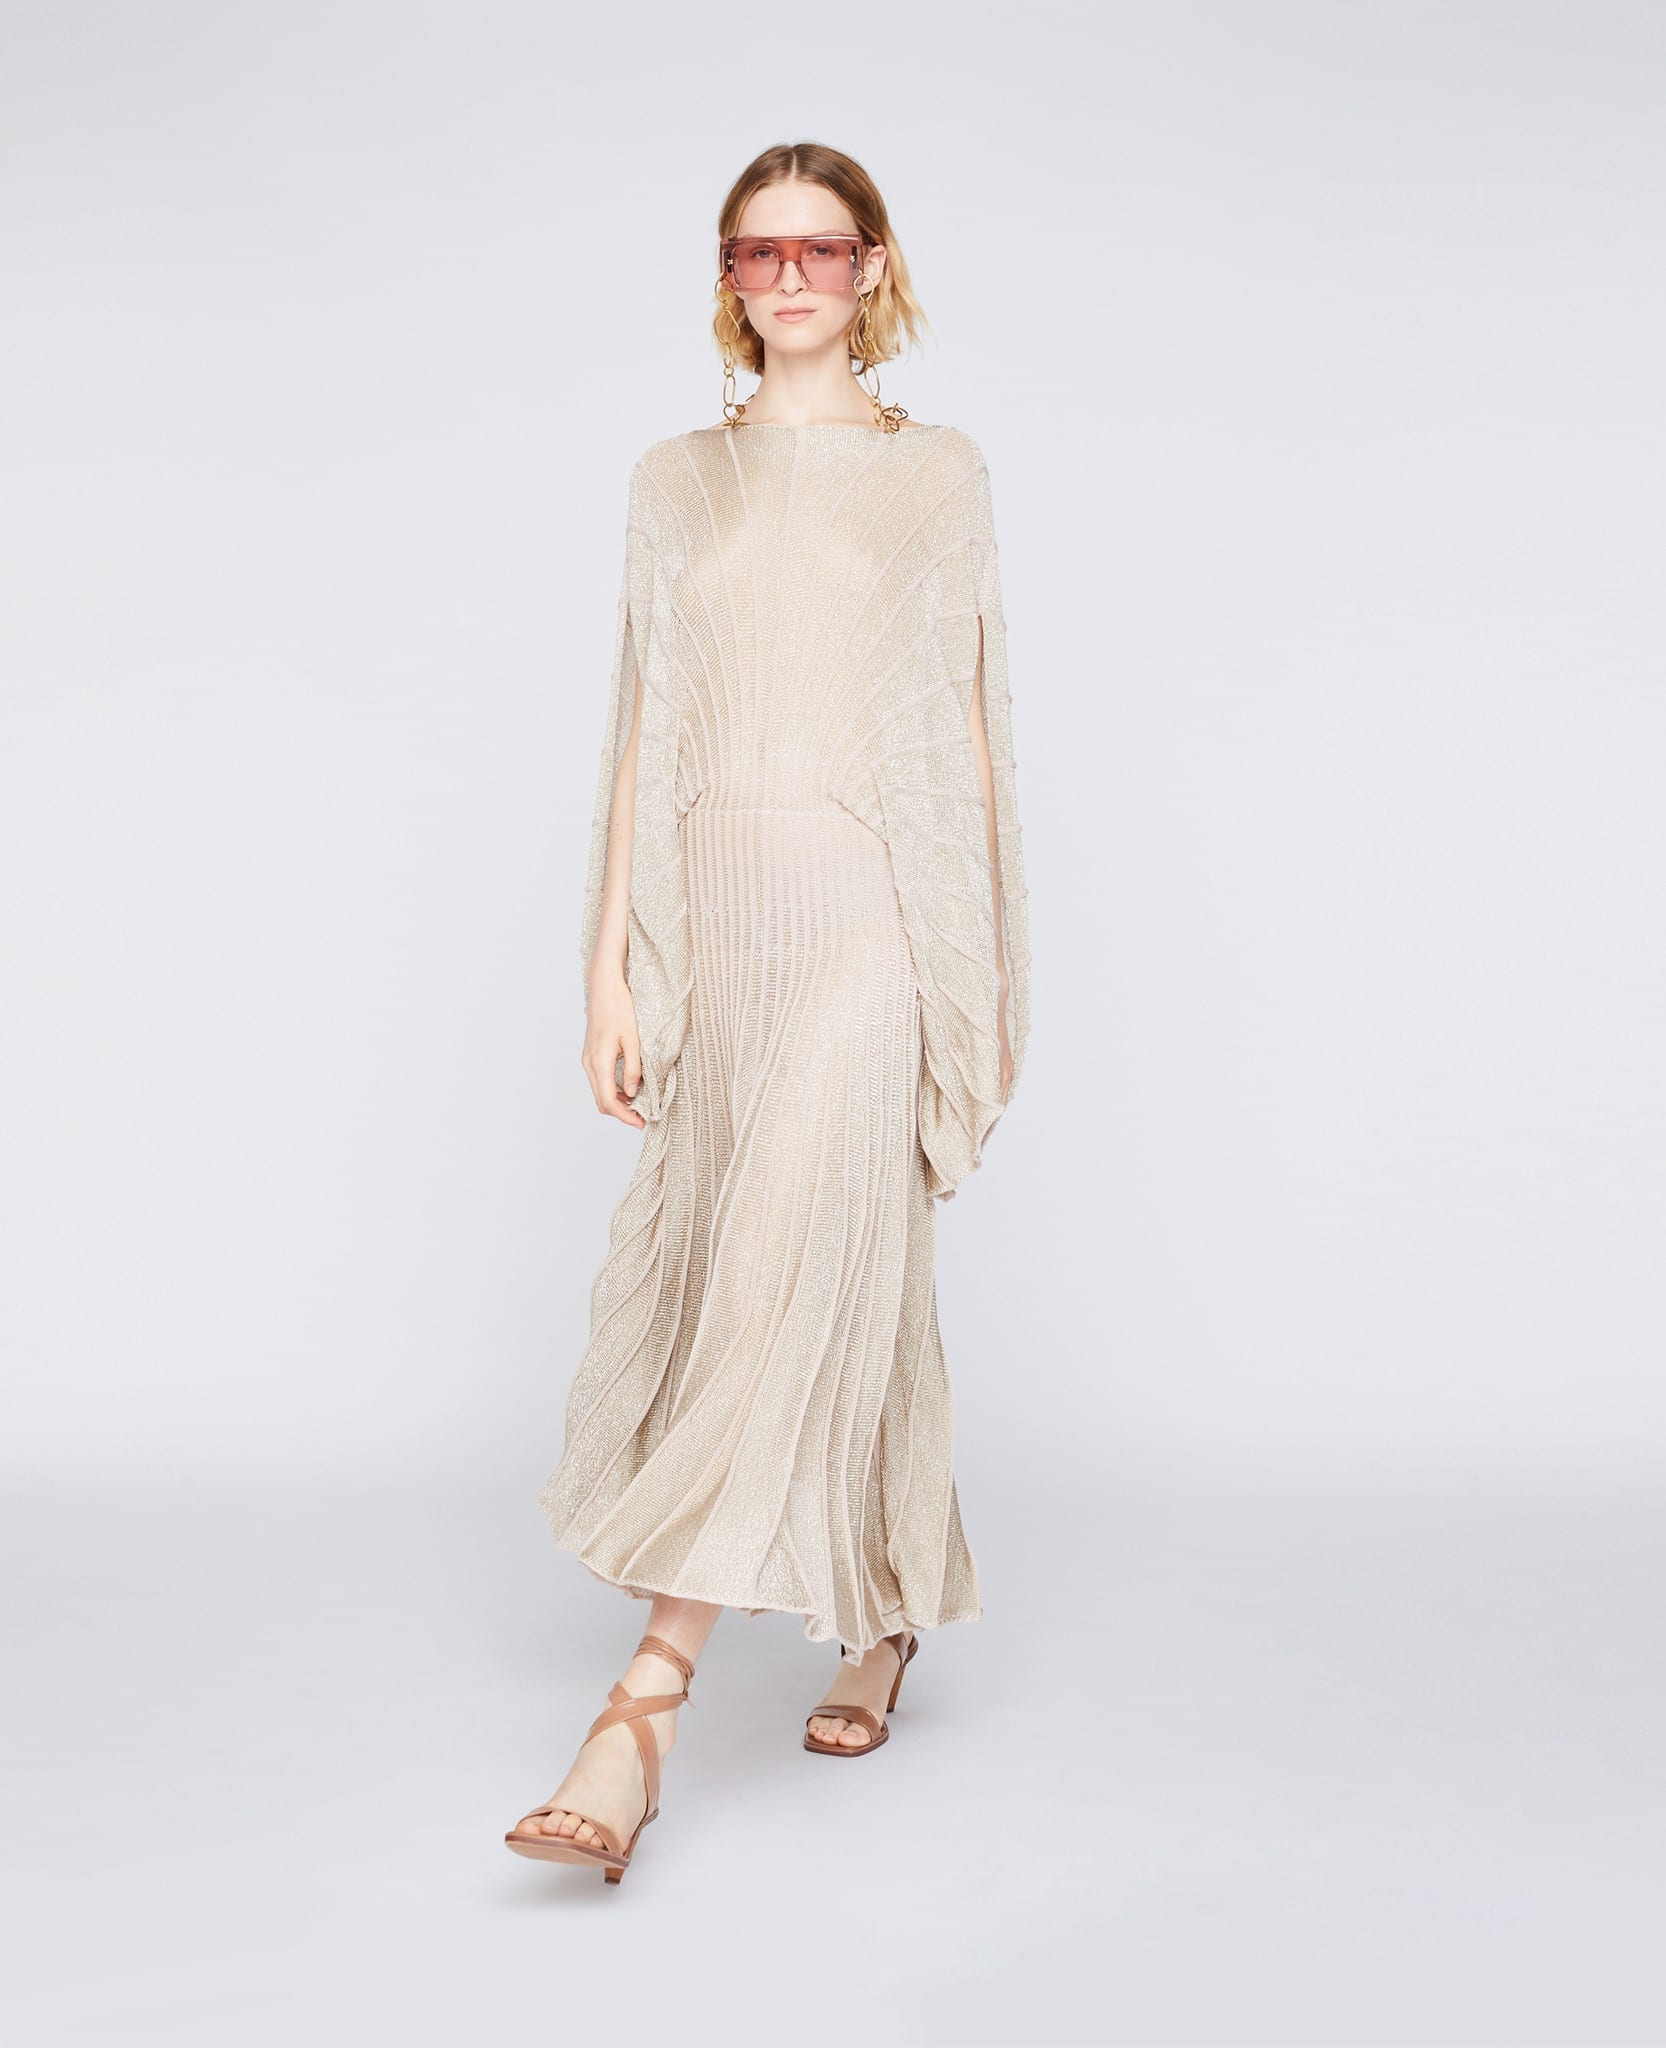 STELLA MCCARTNEY Lurex Knit Midi Dress